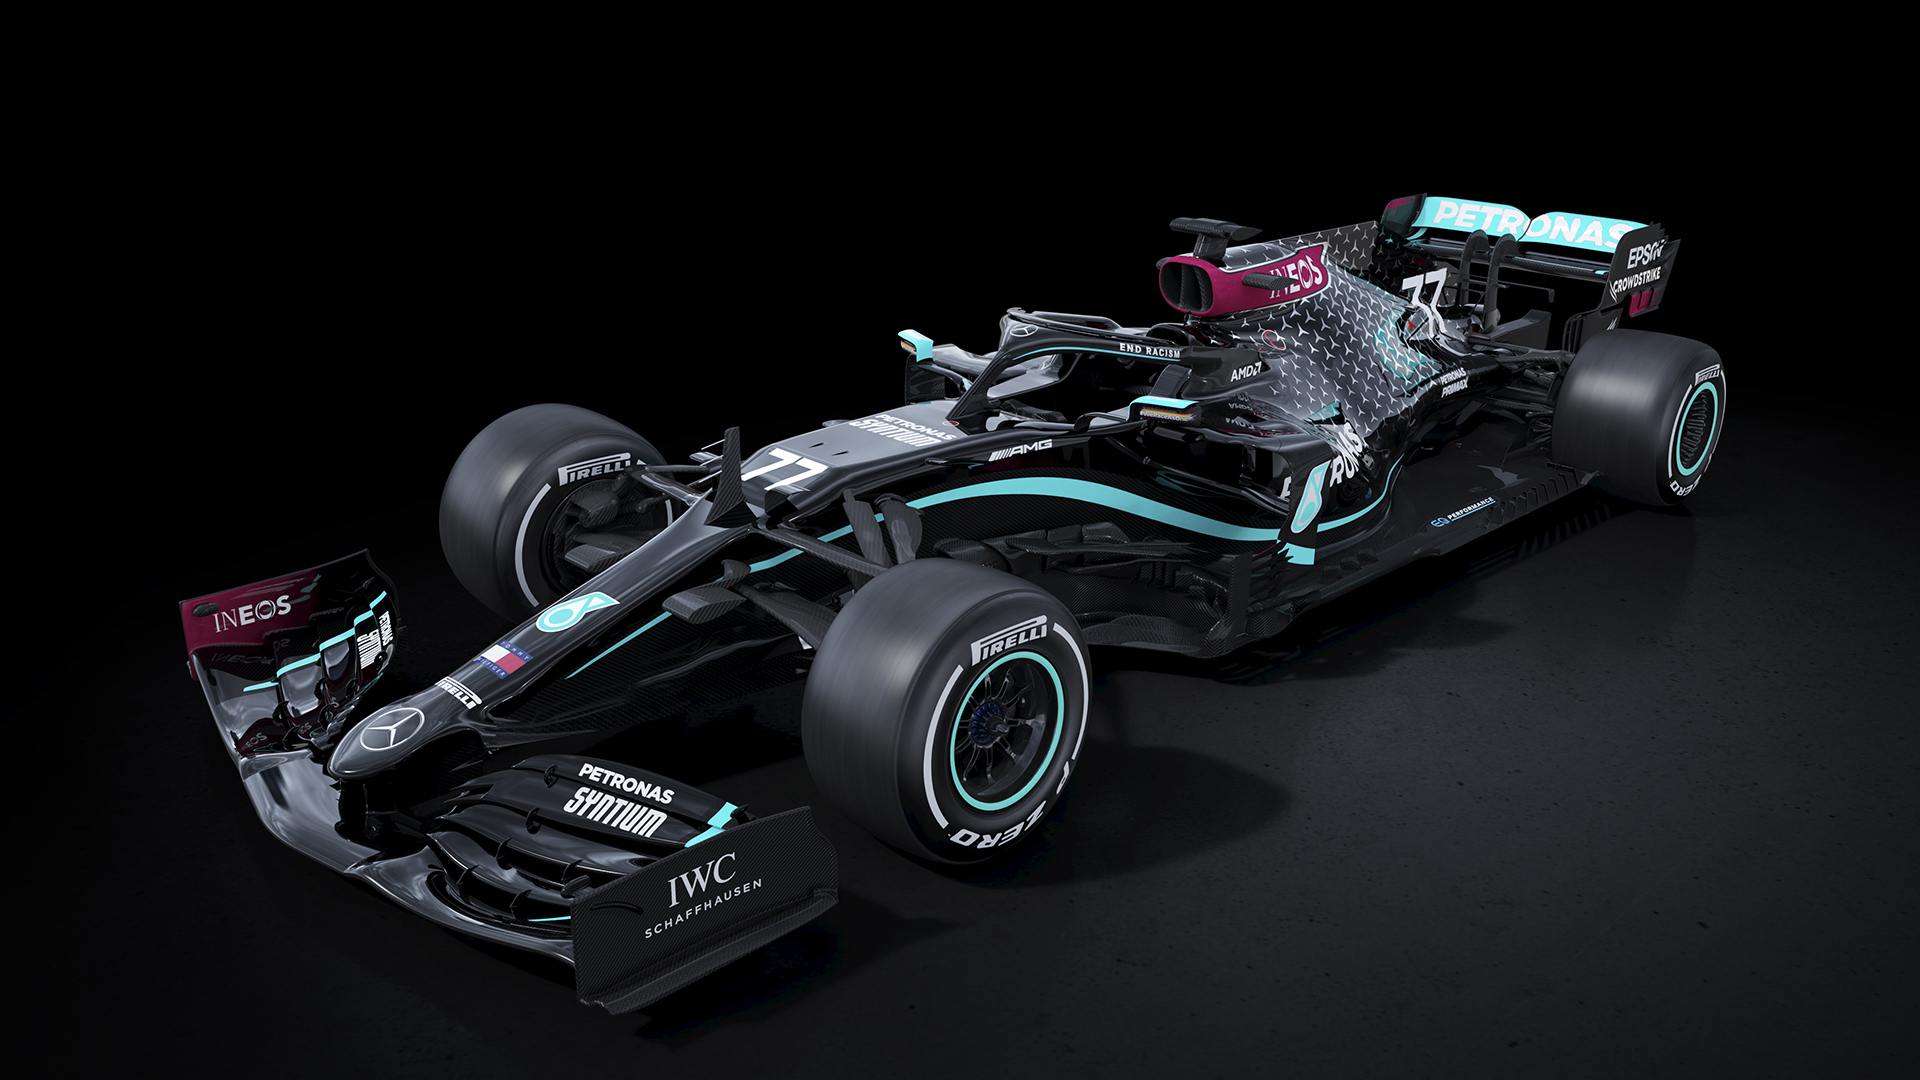 Lewis Hamilton   the death nail in Mercedes coffin lewis hamilton the death nail in mercedes coffin 4  sport other europe